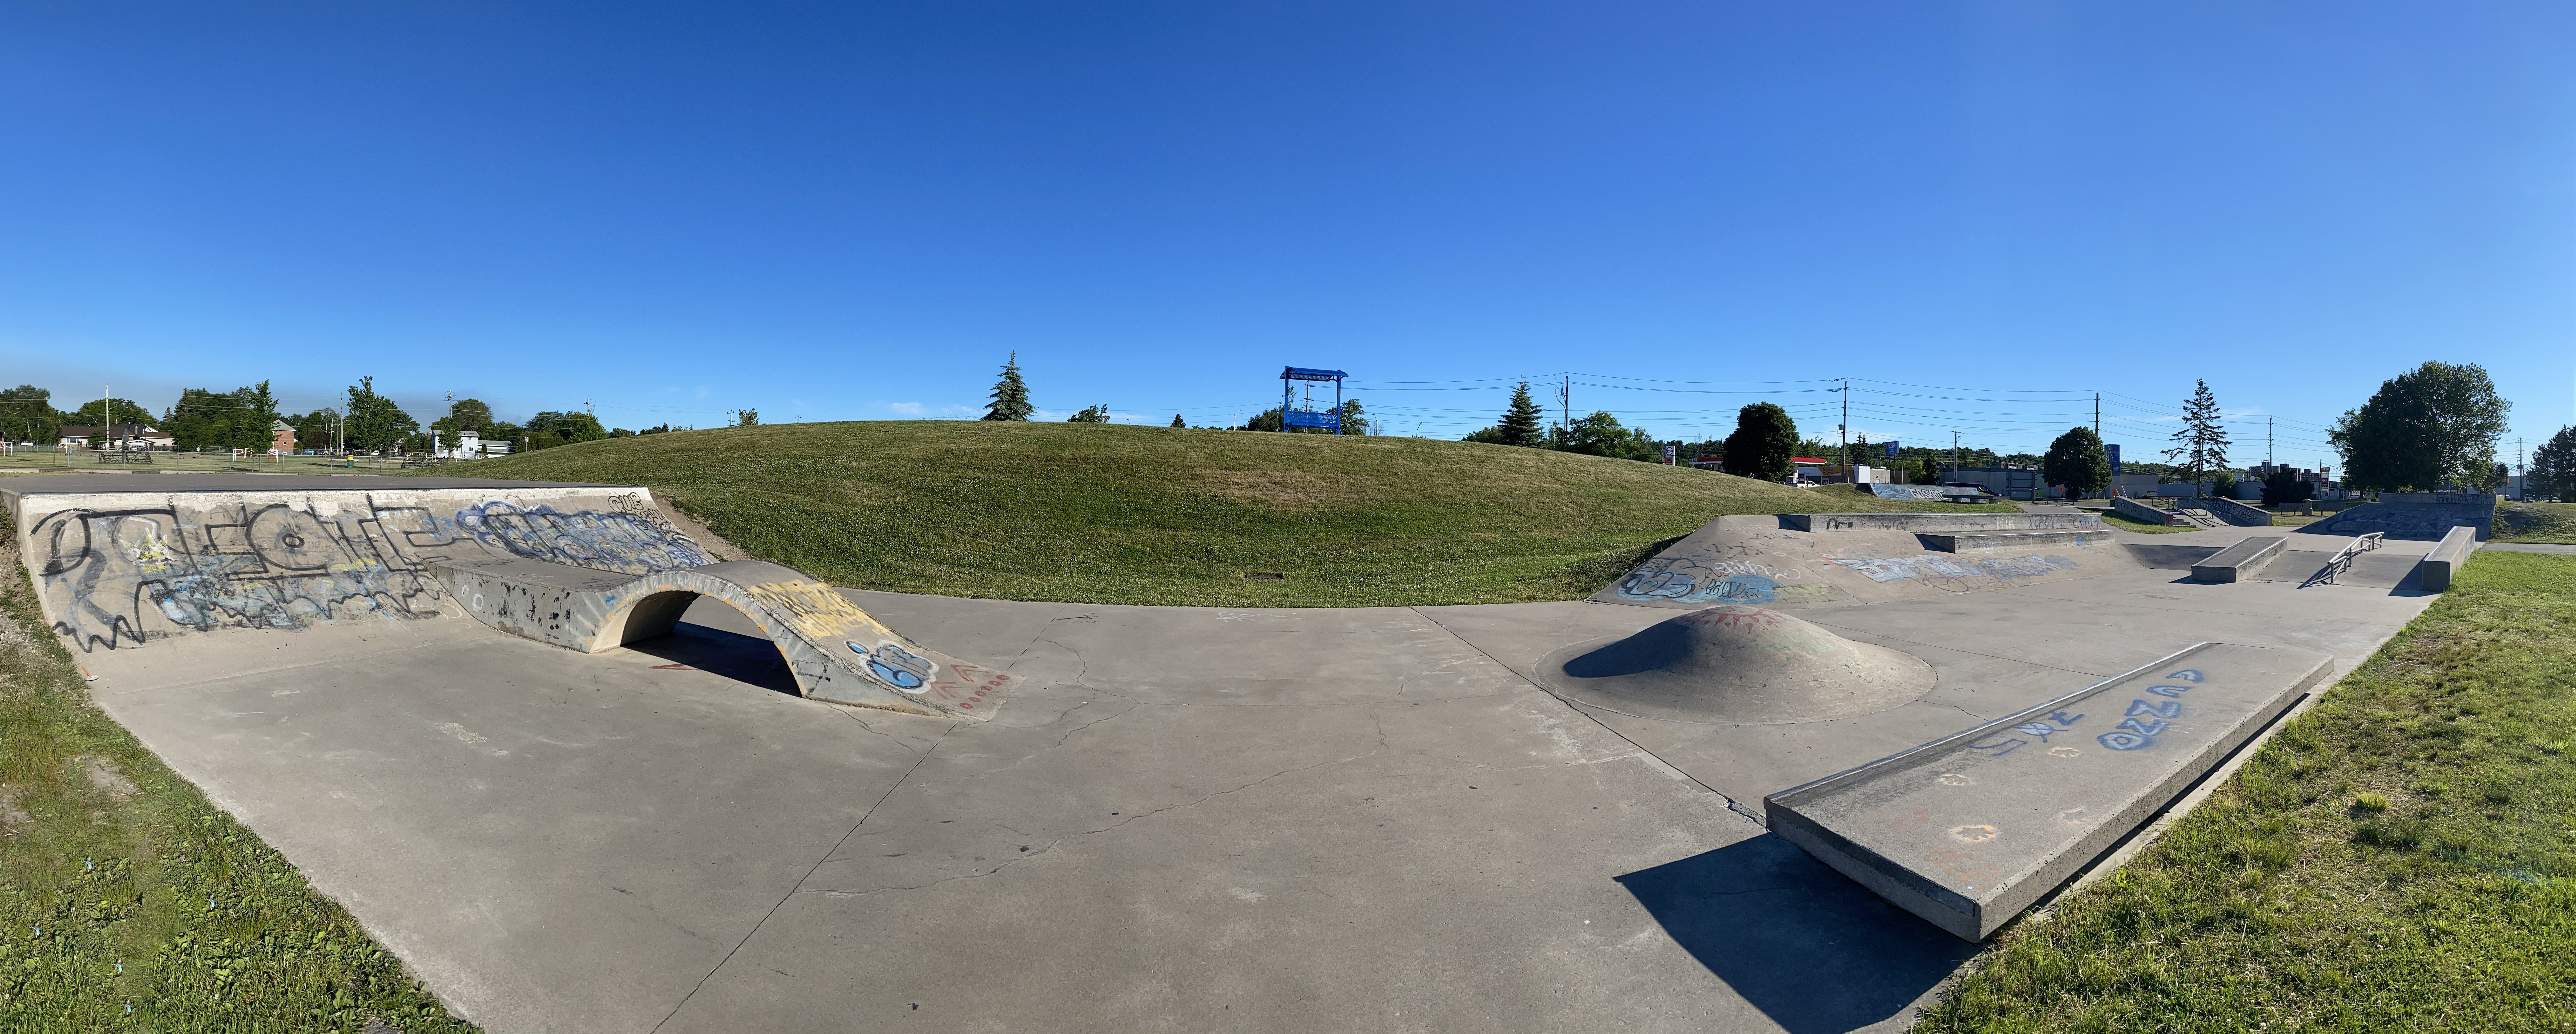 sault-ste marie skatepark panoramic from the rear section